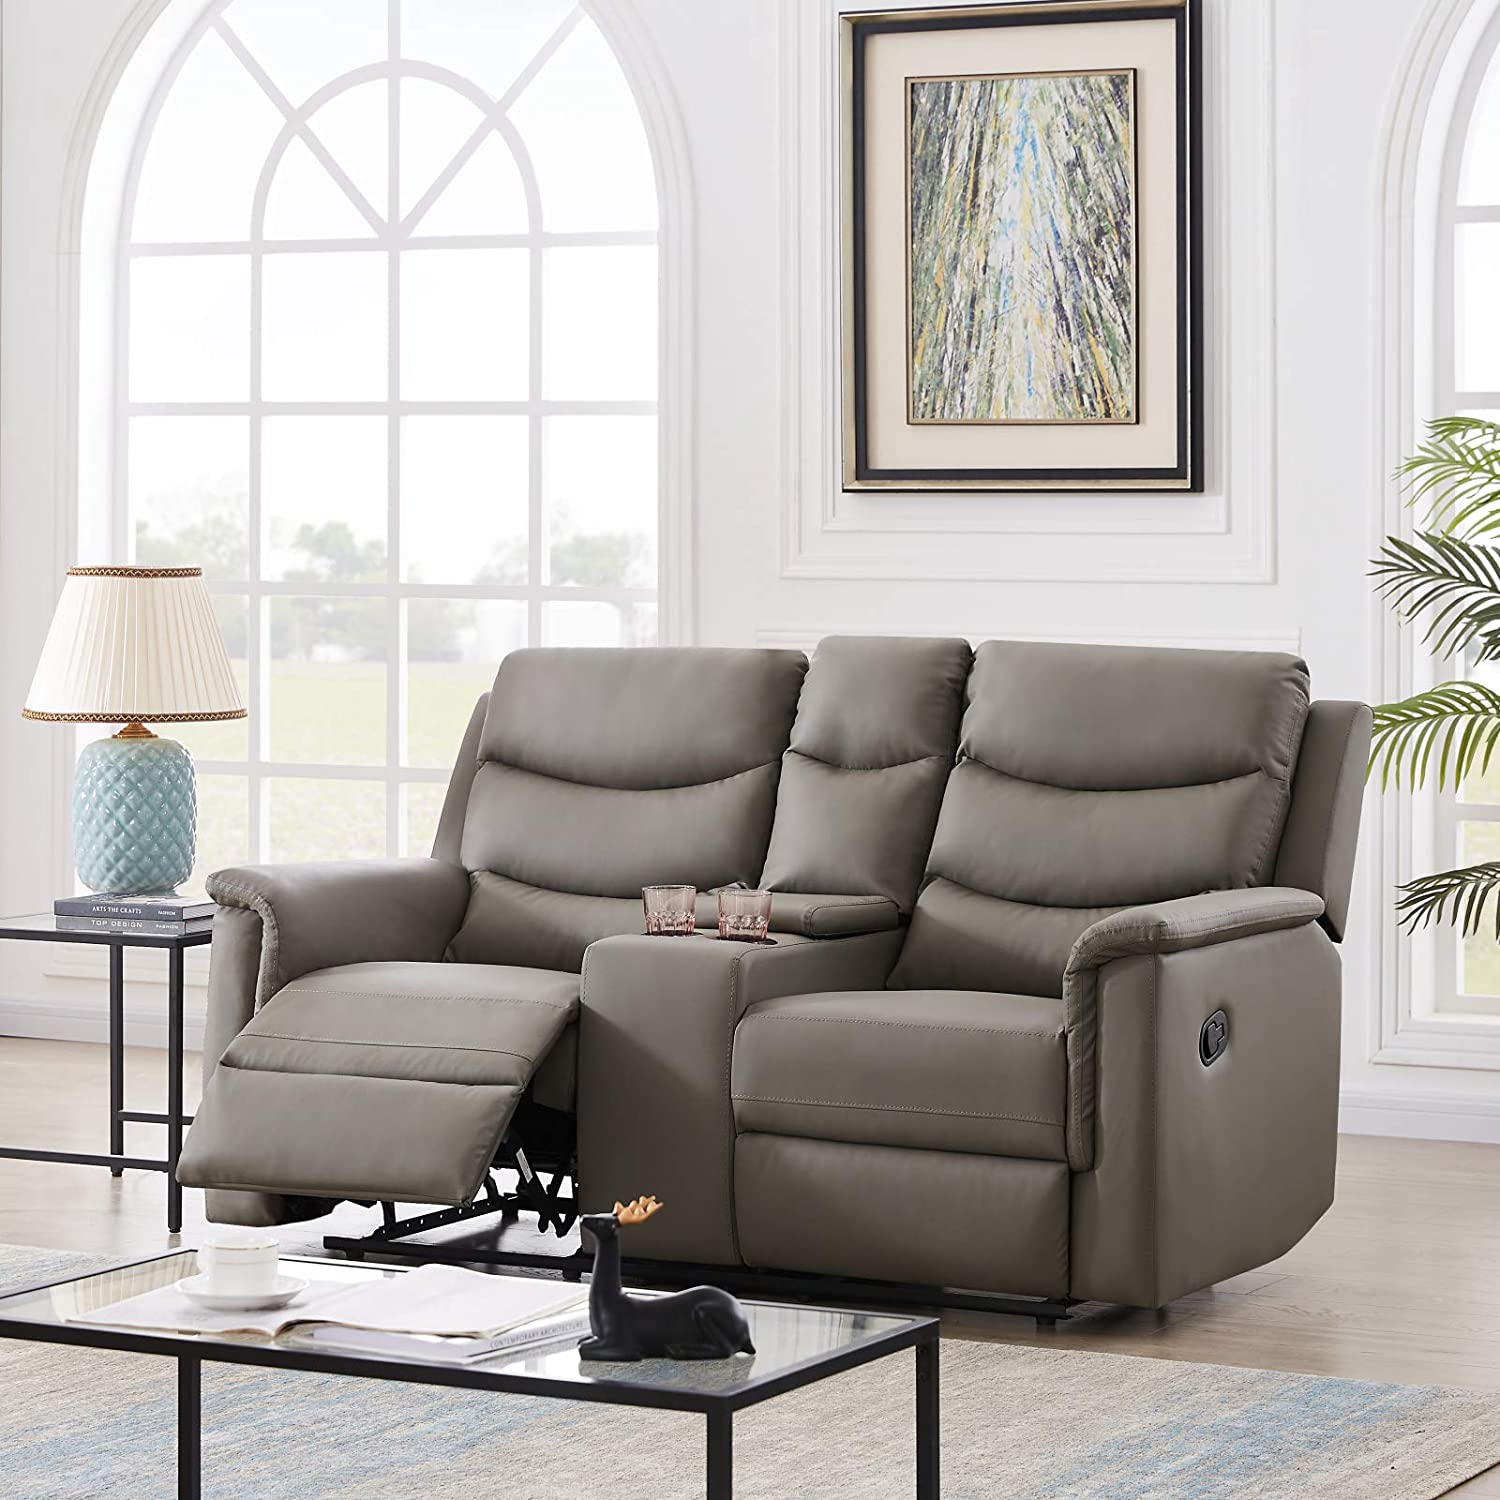 Pannow Double Recliner Loveseat with Console Slate, Double Reclining Sofa with Cup Holder, 2-Seater with Flipped Middle BACKREST Black PU, Theater Seating Furniture Sofa Bed, Gray PU